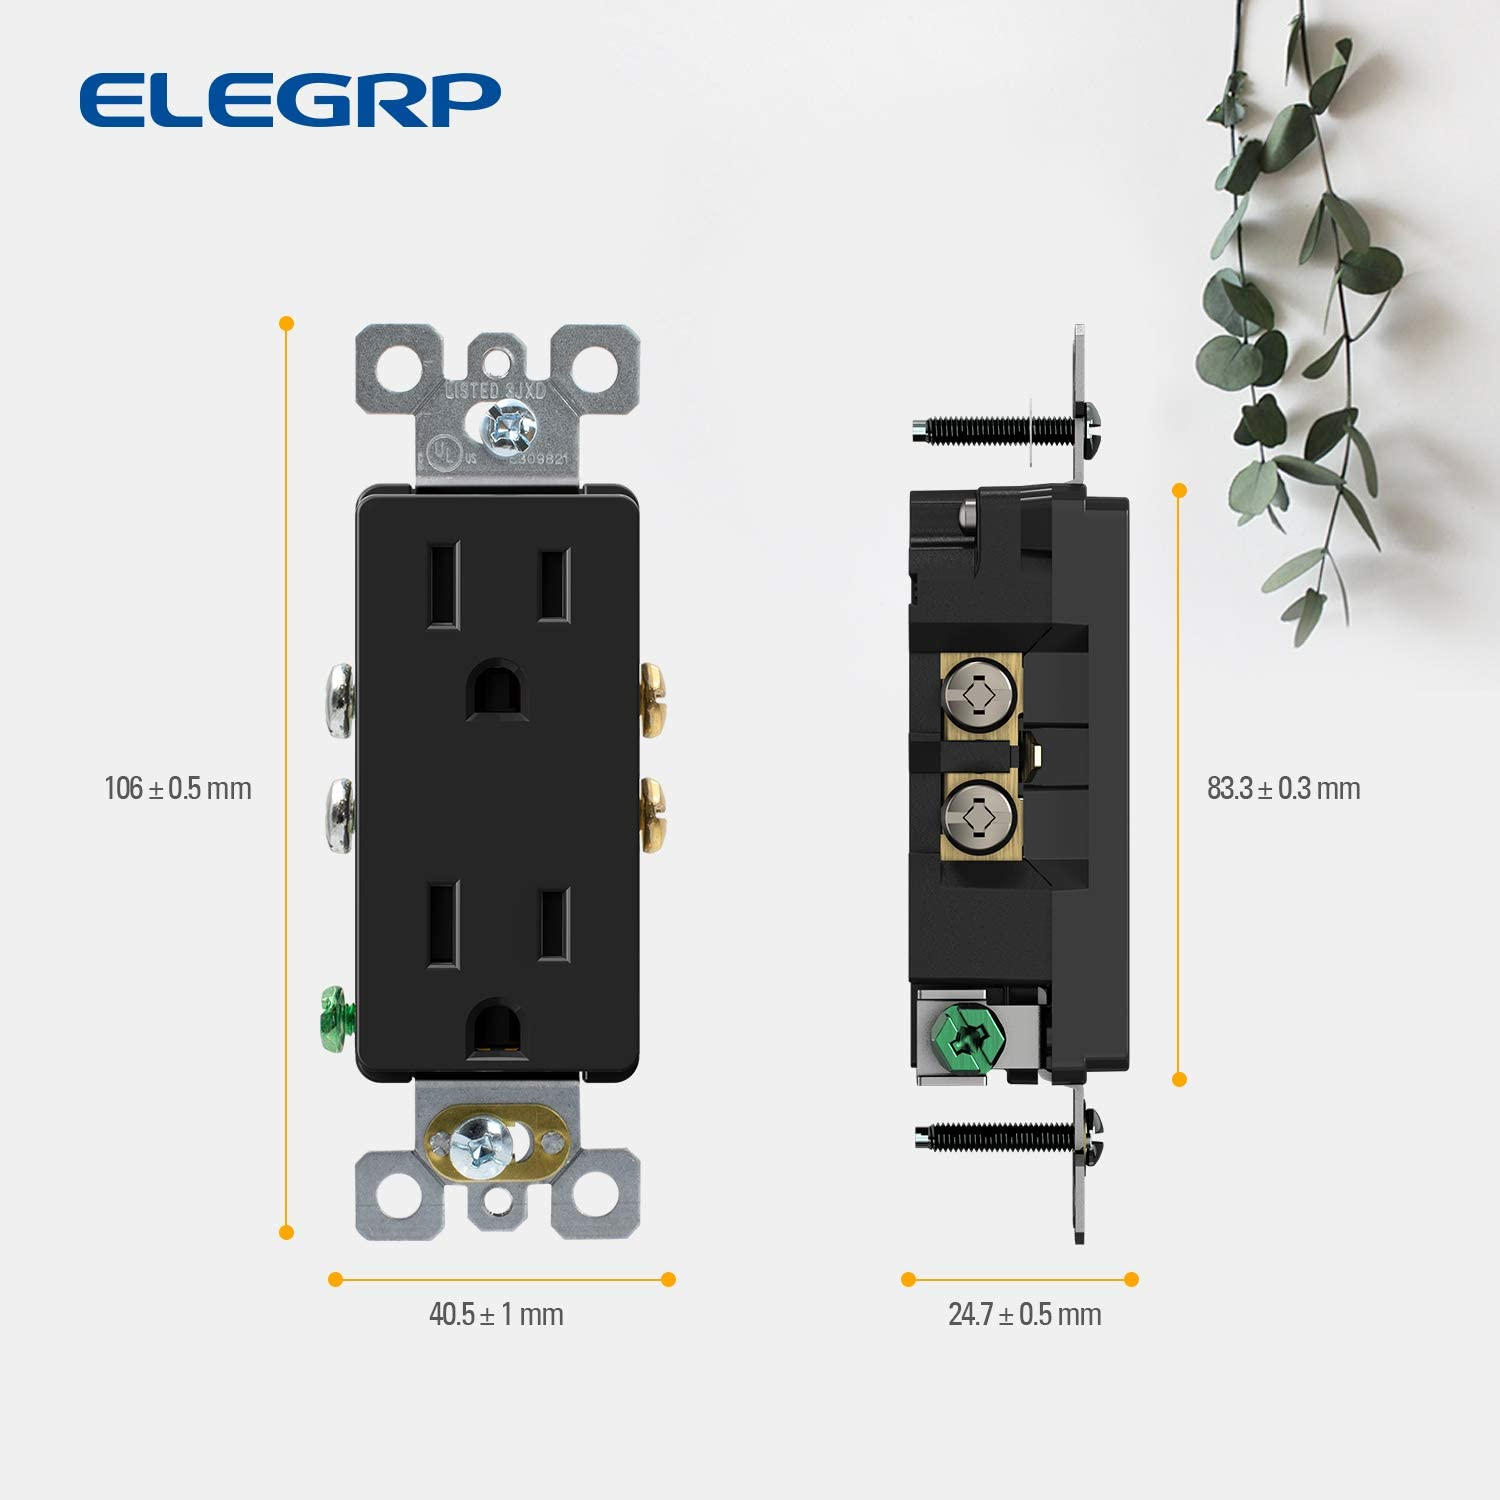 ELEGRP DecoratorReceptacle, 15A 125V Standard Electrical Wall Outlet, 2 Pole 3 Wire, NEMA 5-15R, Self-Grounding Residential Grade Straight Blade Decorative Duplex Outlet, UL (Glossy Black, 10 Pack) - -